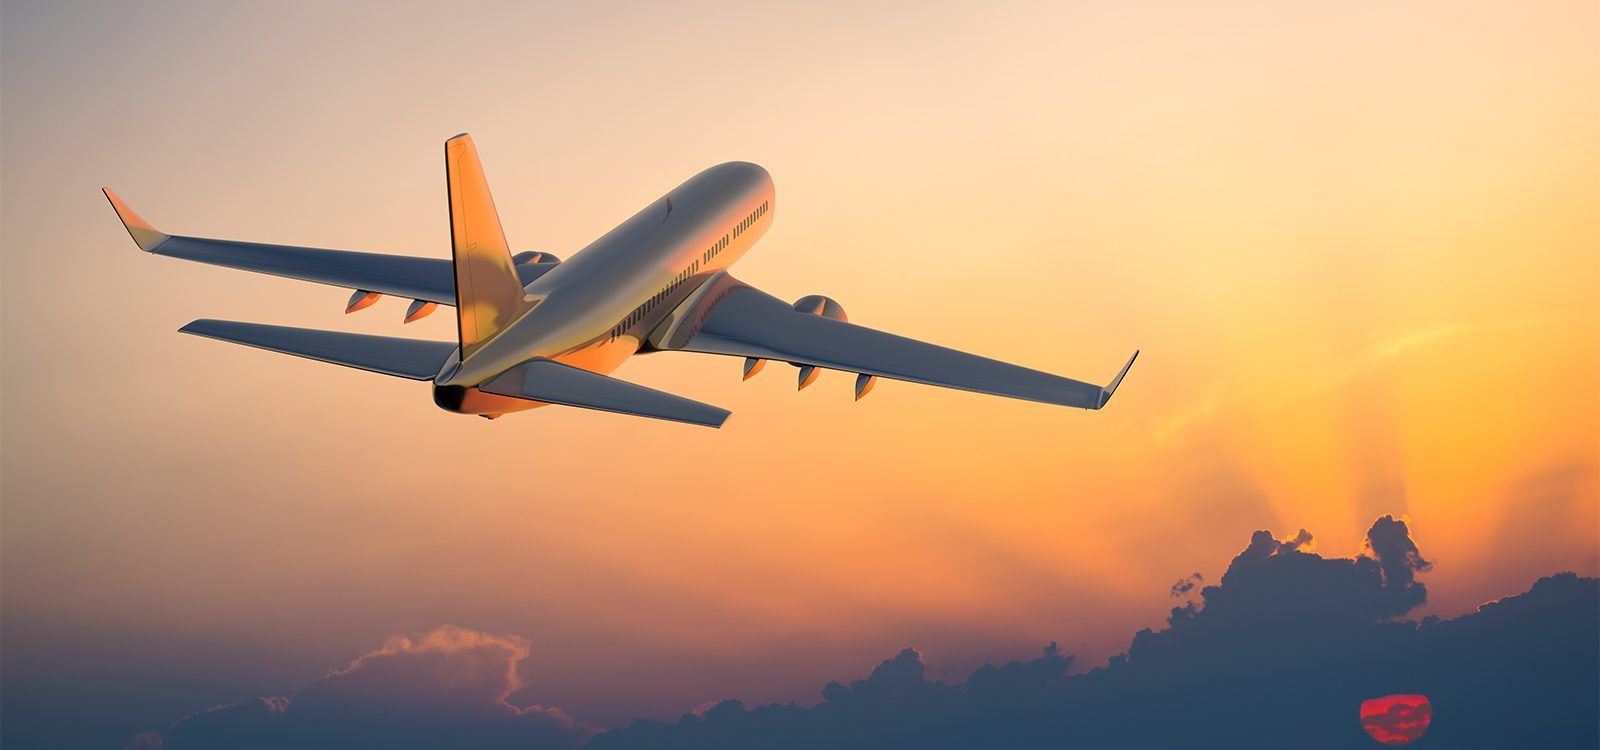 Reviving the travel industry and travel insurance market